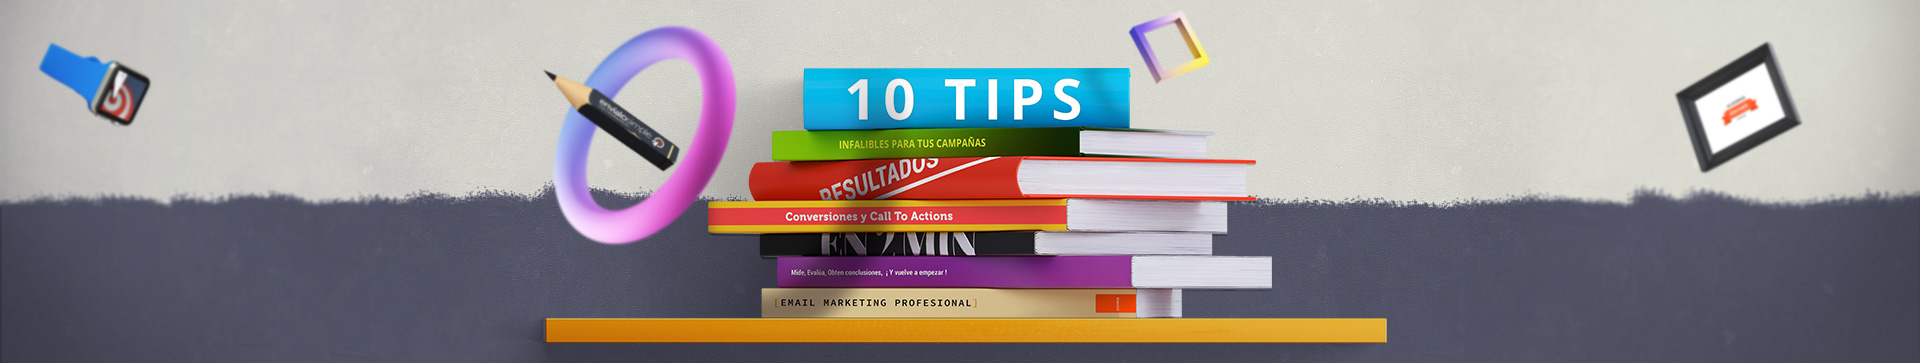 tips email marketing envialo simple